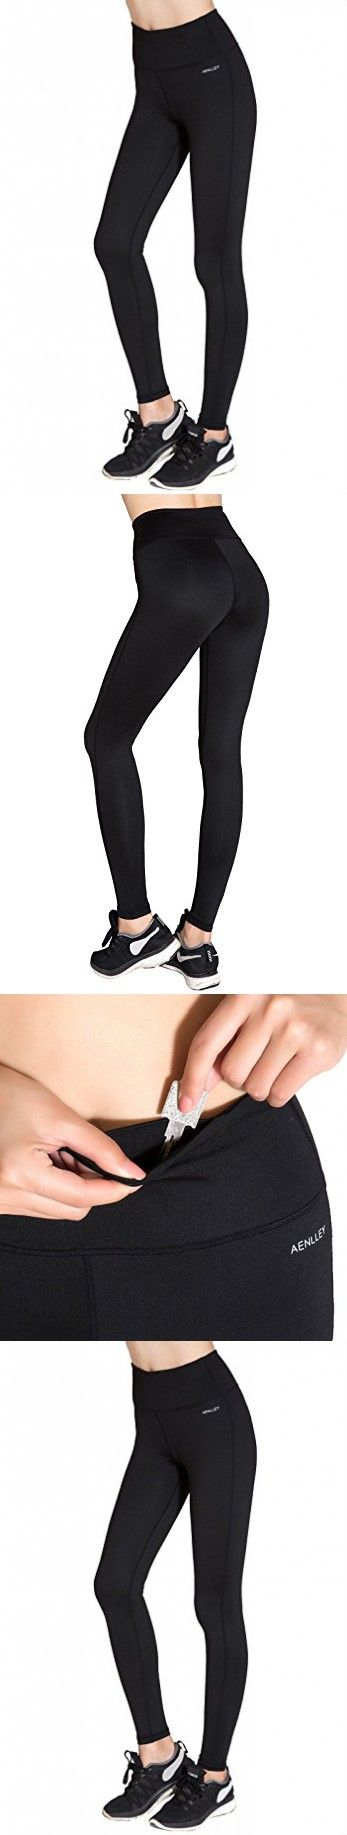 Aenlley Women's Activewear Yoga Pants High Rise Workout Gym Spanx Tights leggings Color Black Size S